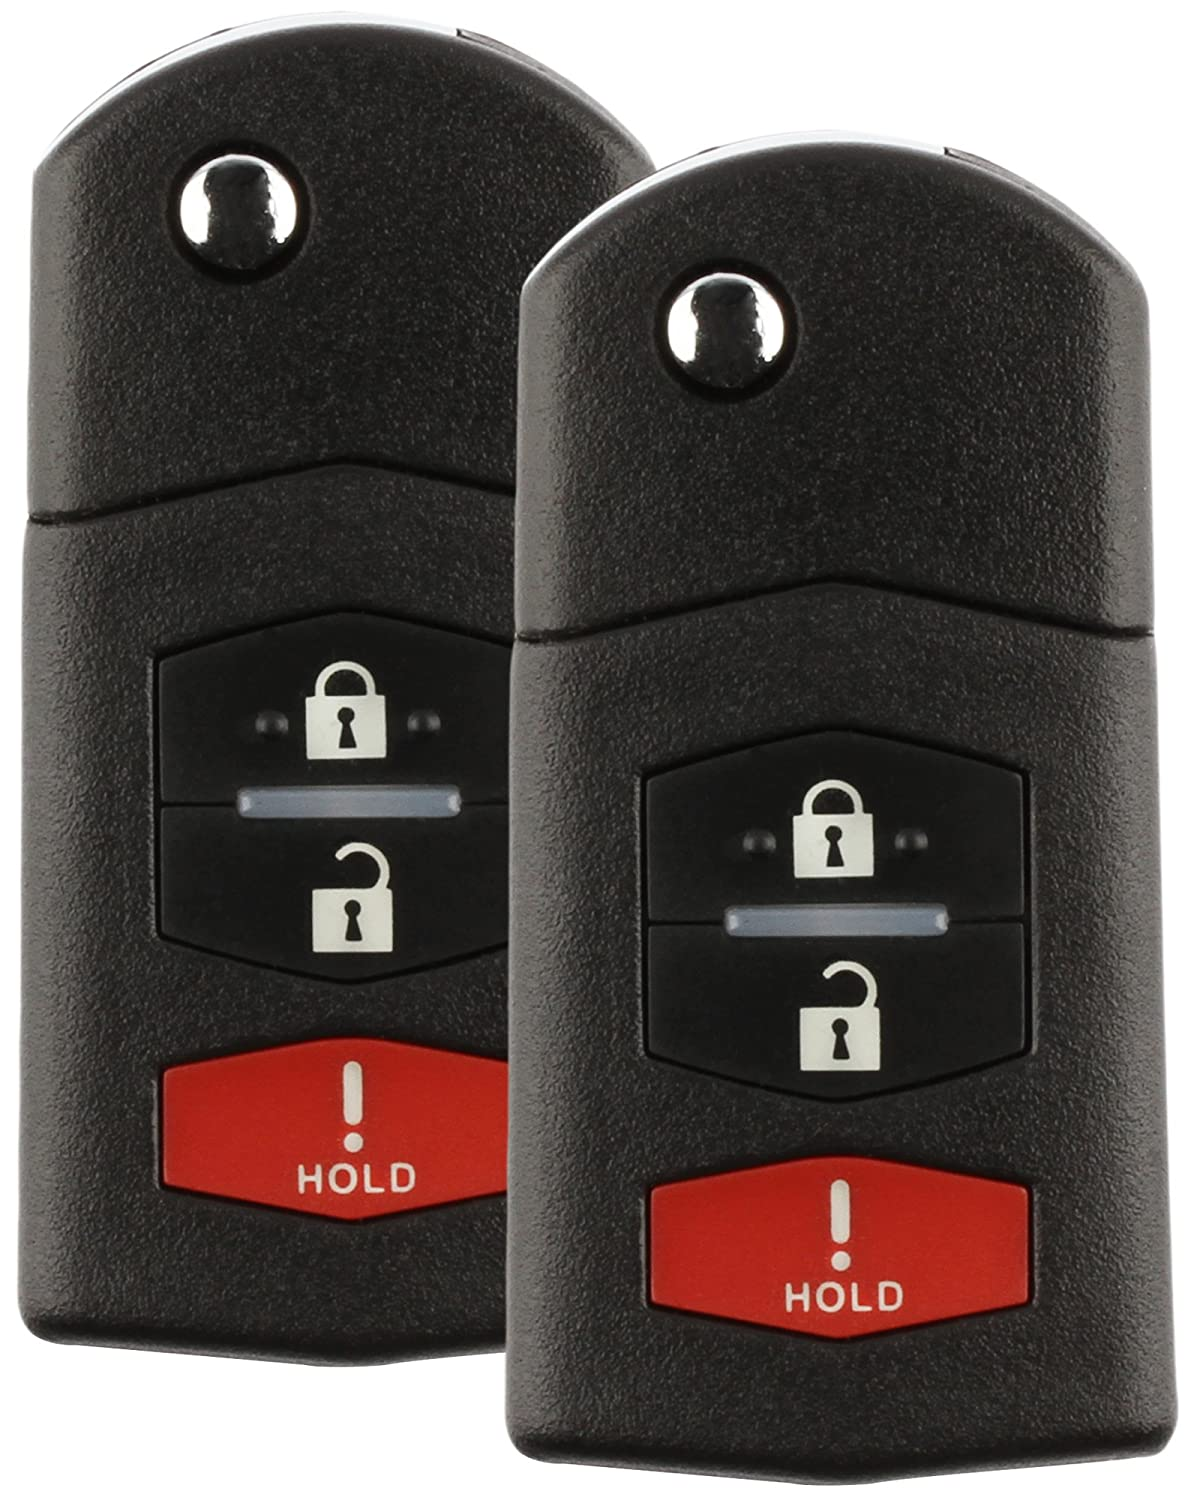 2 Pack Discount Keyless Car Remote Entry Replacement Uncut Ignition Flip Key Fob For Mazda CX-7 CX-9 SKE12501